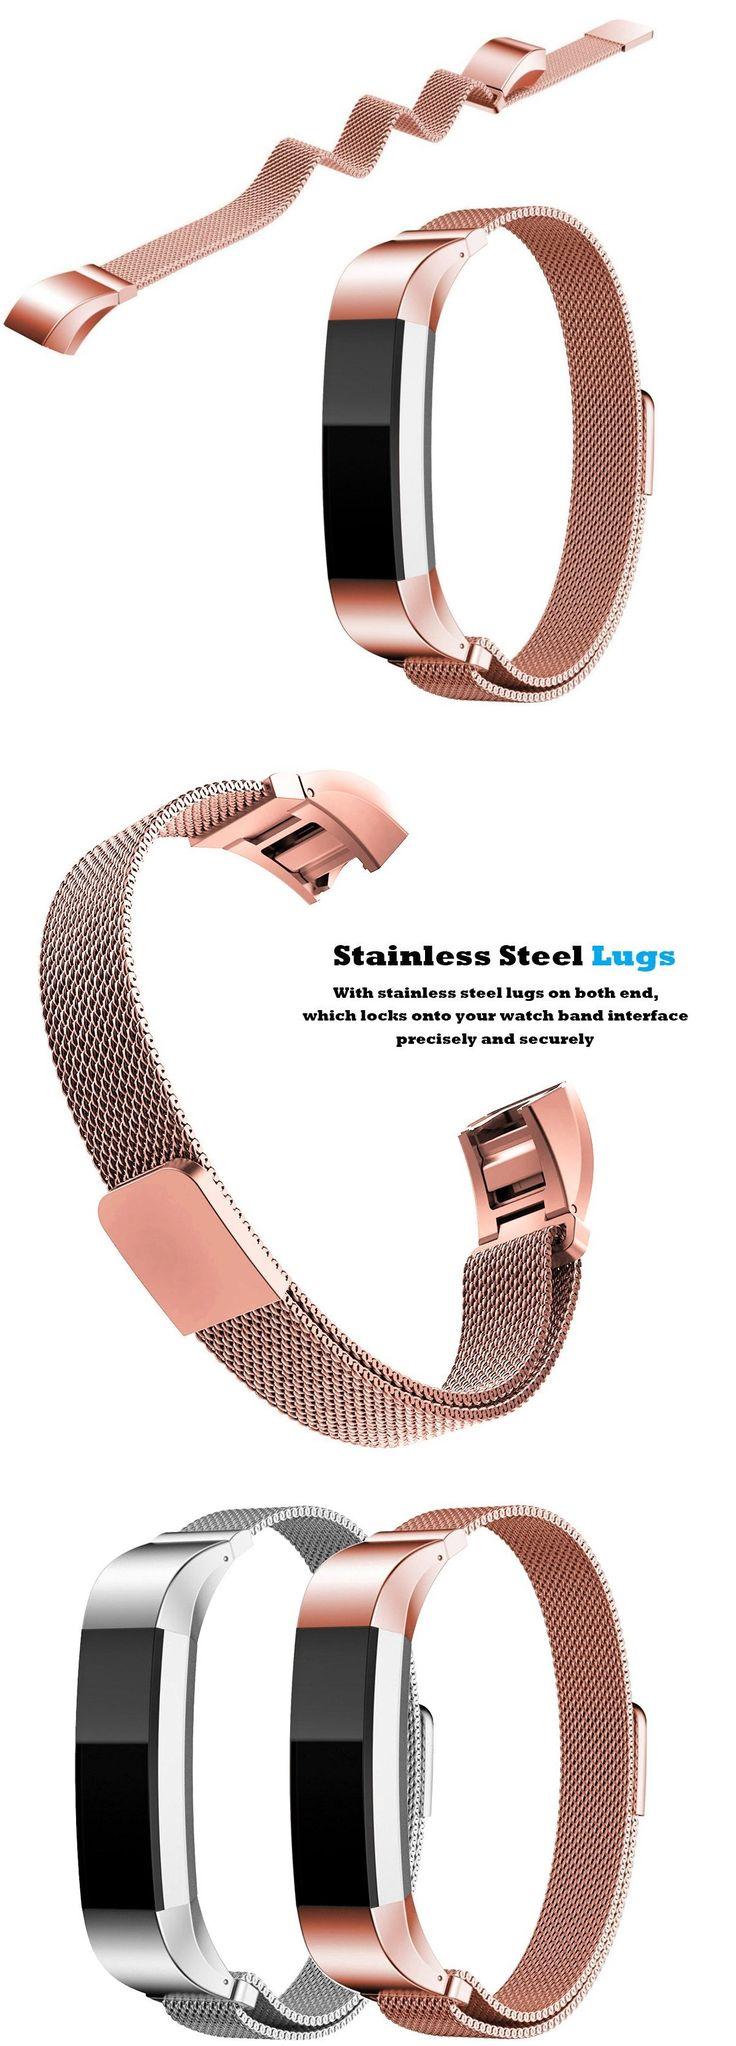 METAL BAND FOR FITBIT ALTA SILVER AND PINK GOLD BY HUMENN from Amazon